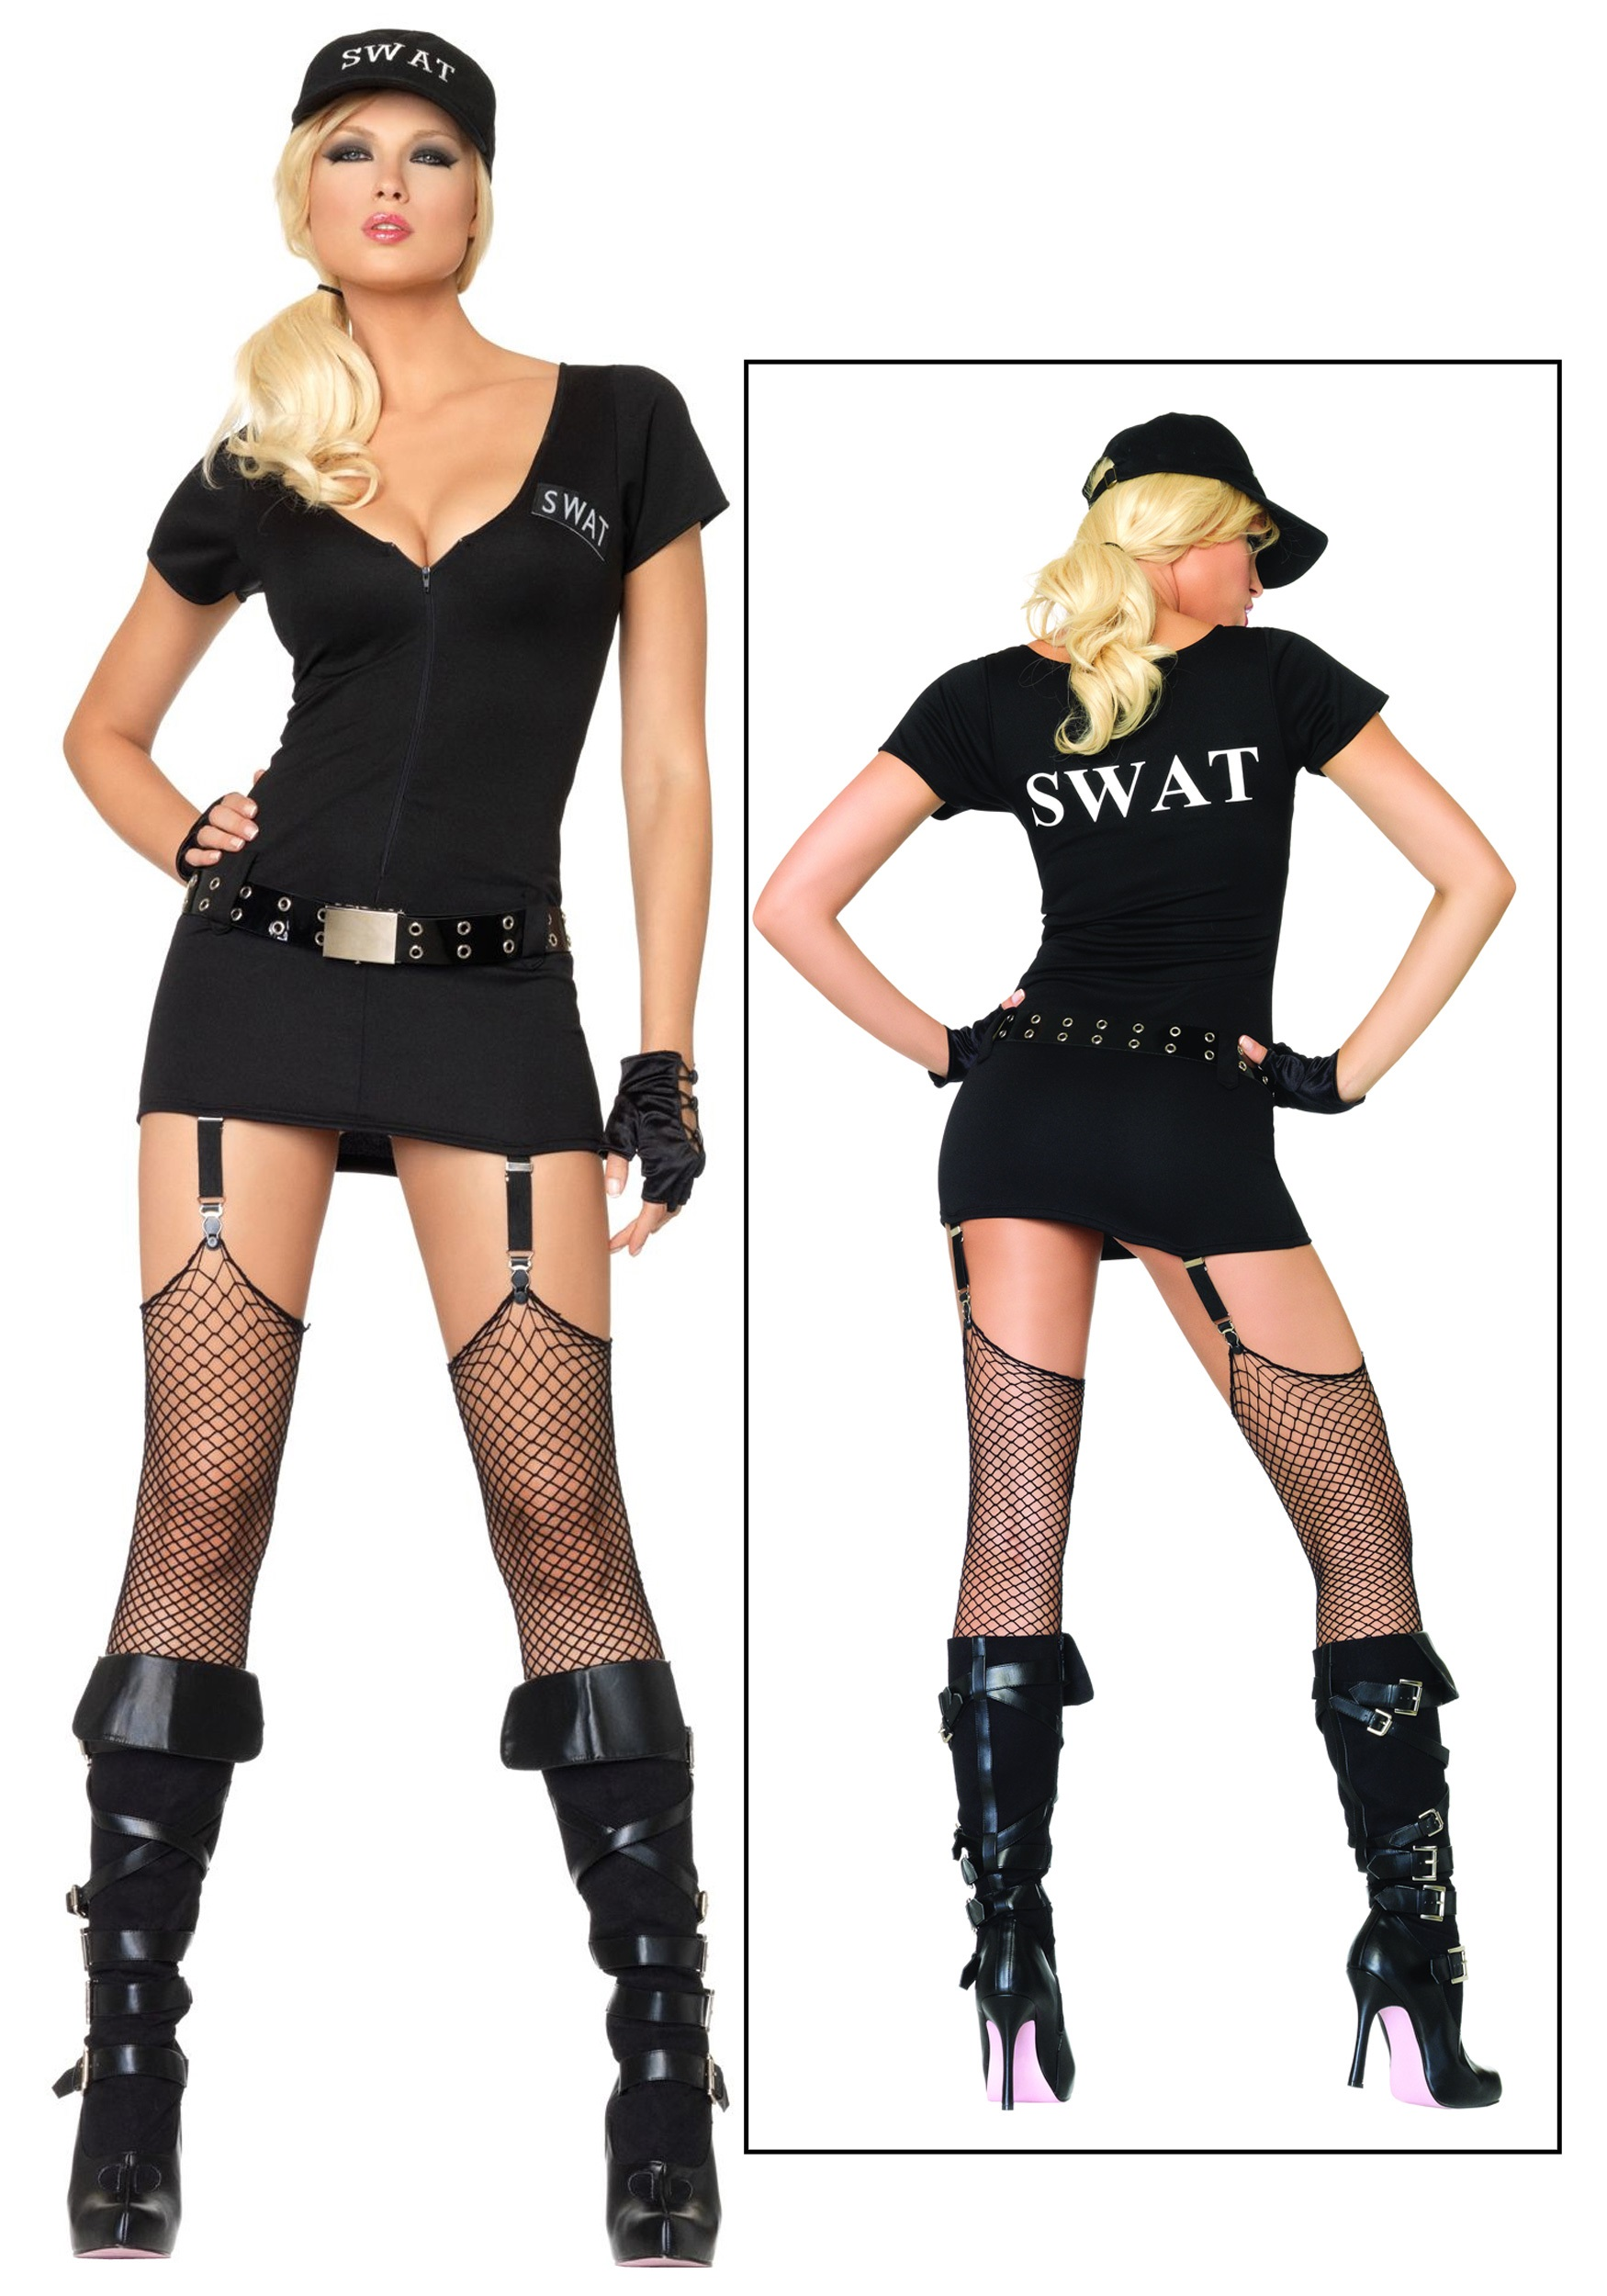 sexy swat commander costume - Swat Costumes For Halloween